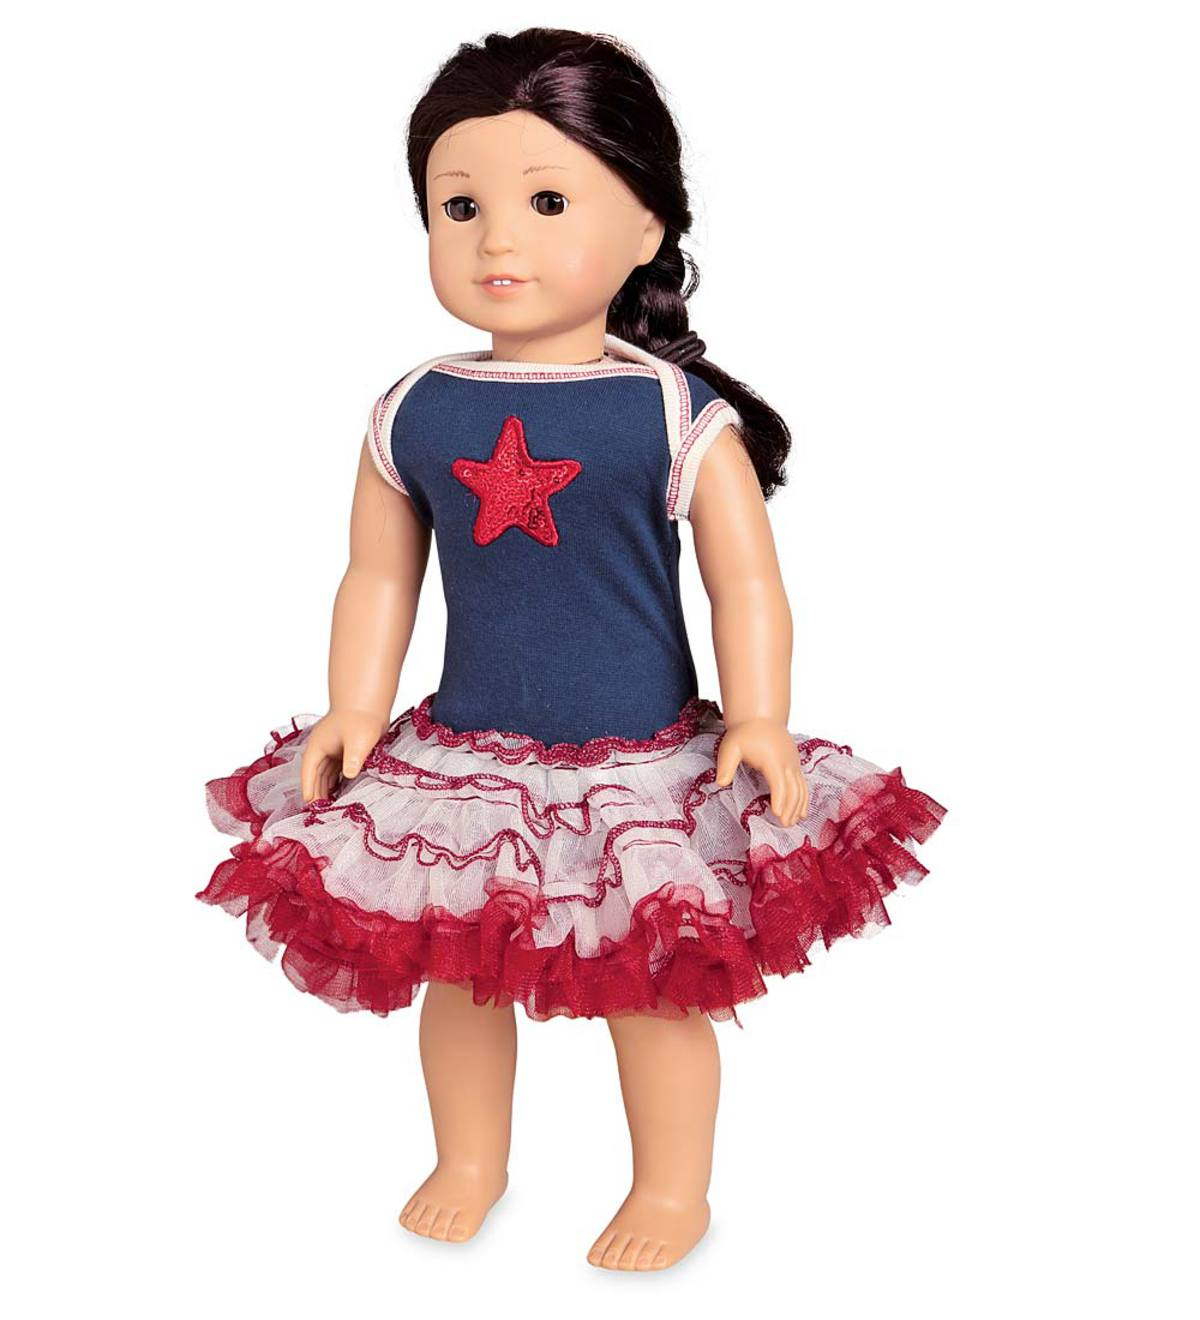 Doll Tutu Dress with Sequin Star - MLT - 01